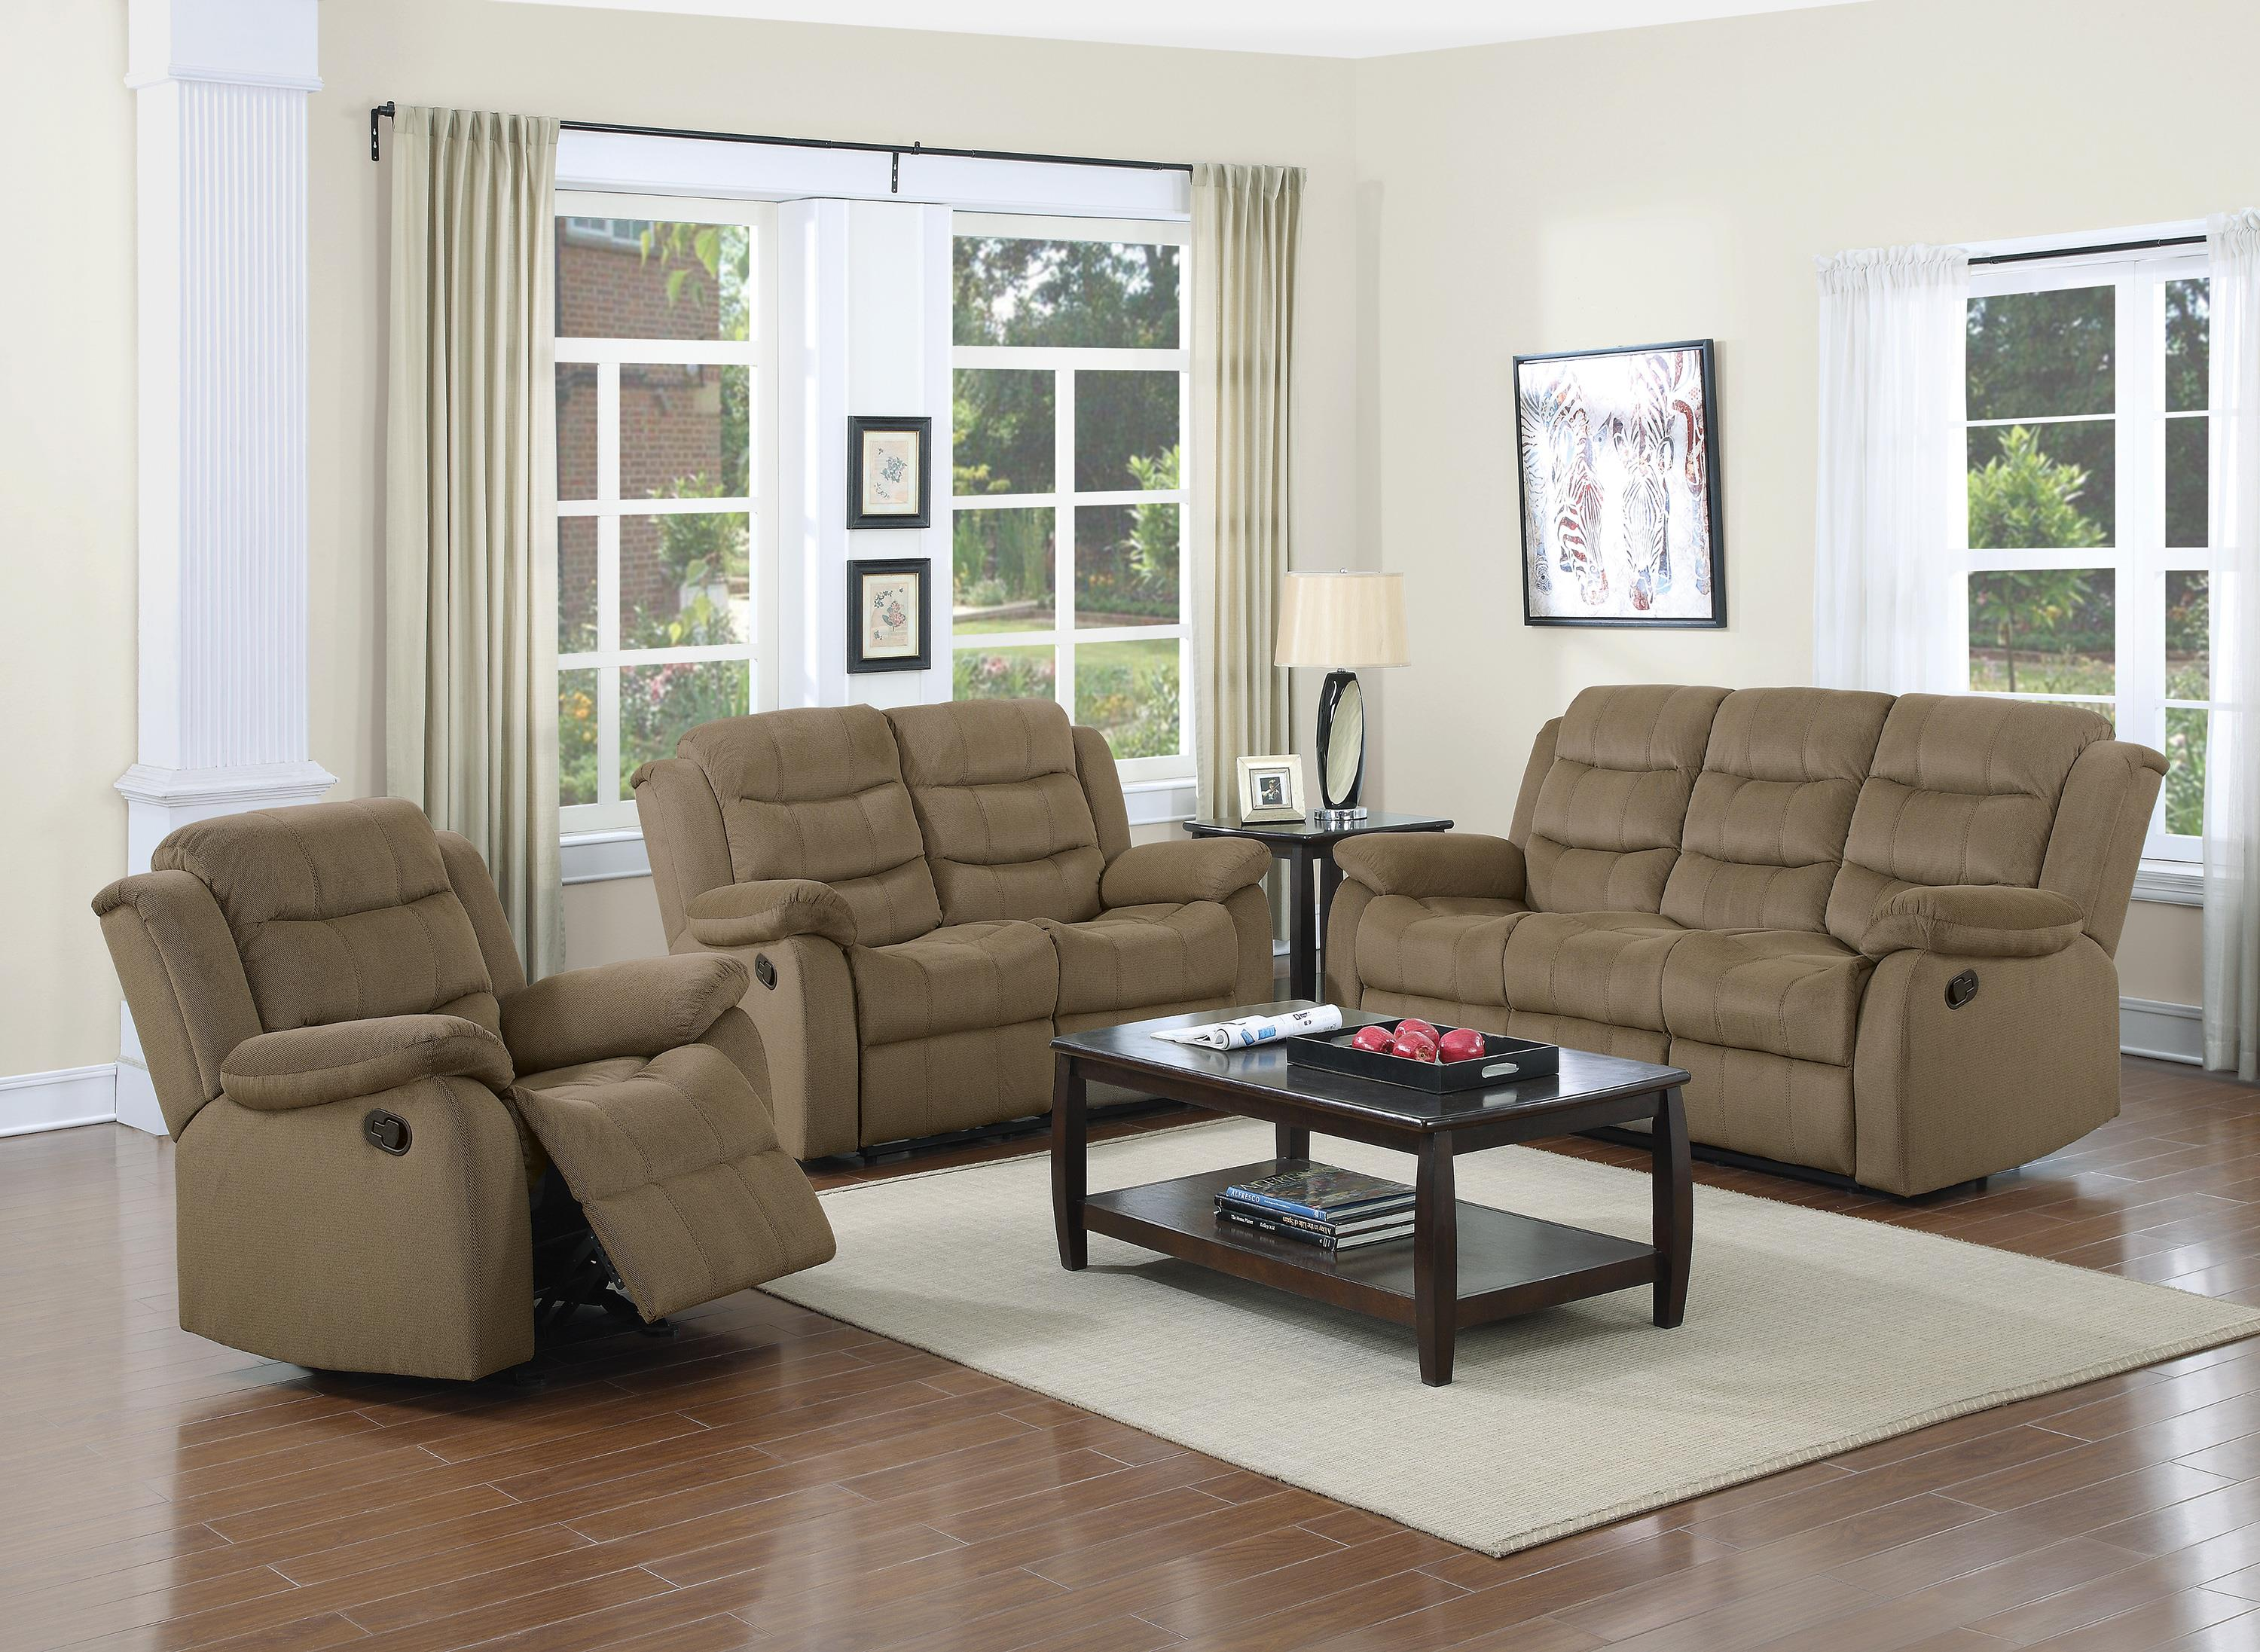 Coaster Rodman Reclining Living Room Group - Item Number: 60188 Living Room Group 1